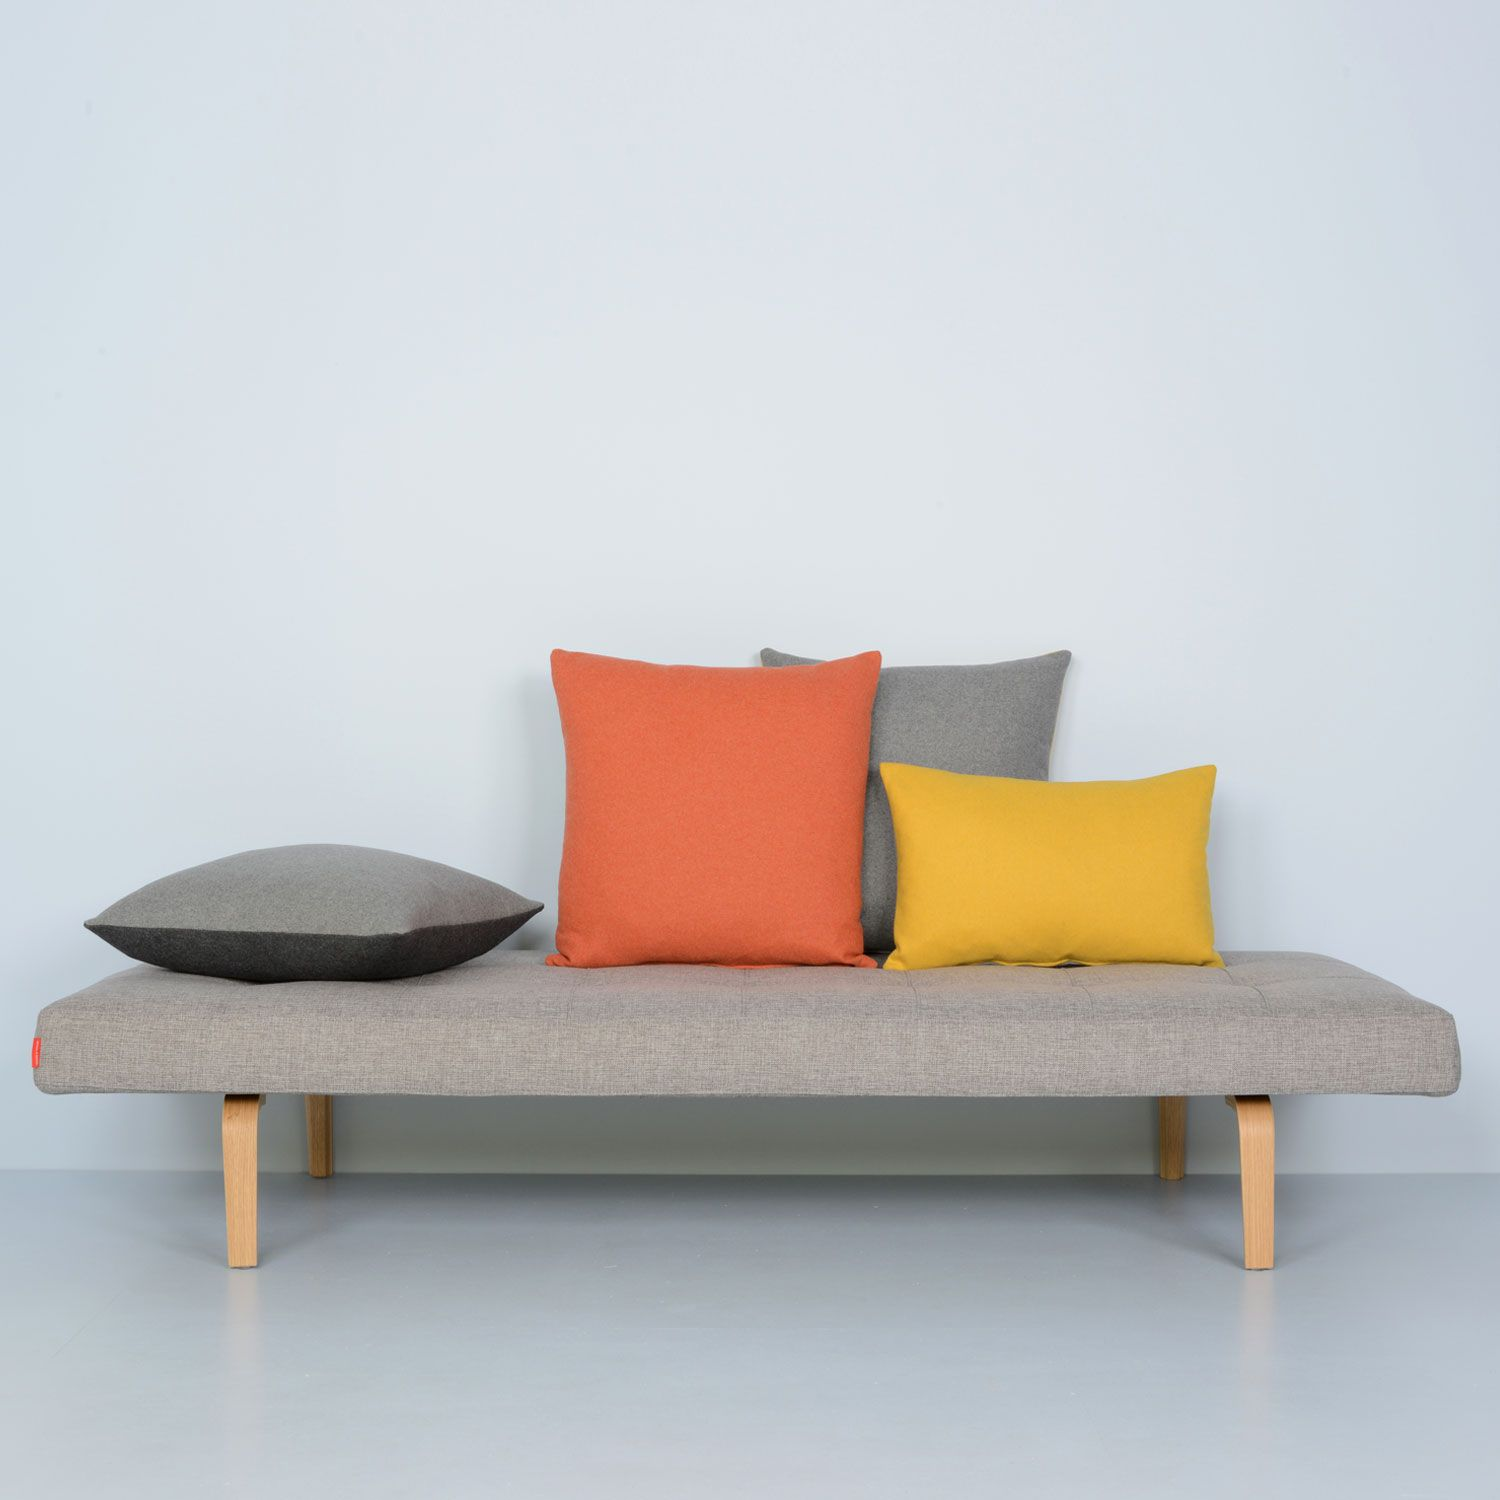 Healu0027s Sofas | Ambrose Pause Day Bed By Per Weiss   Chaise Longues   Sofas